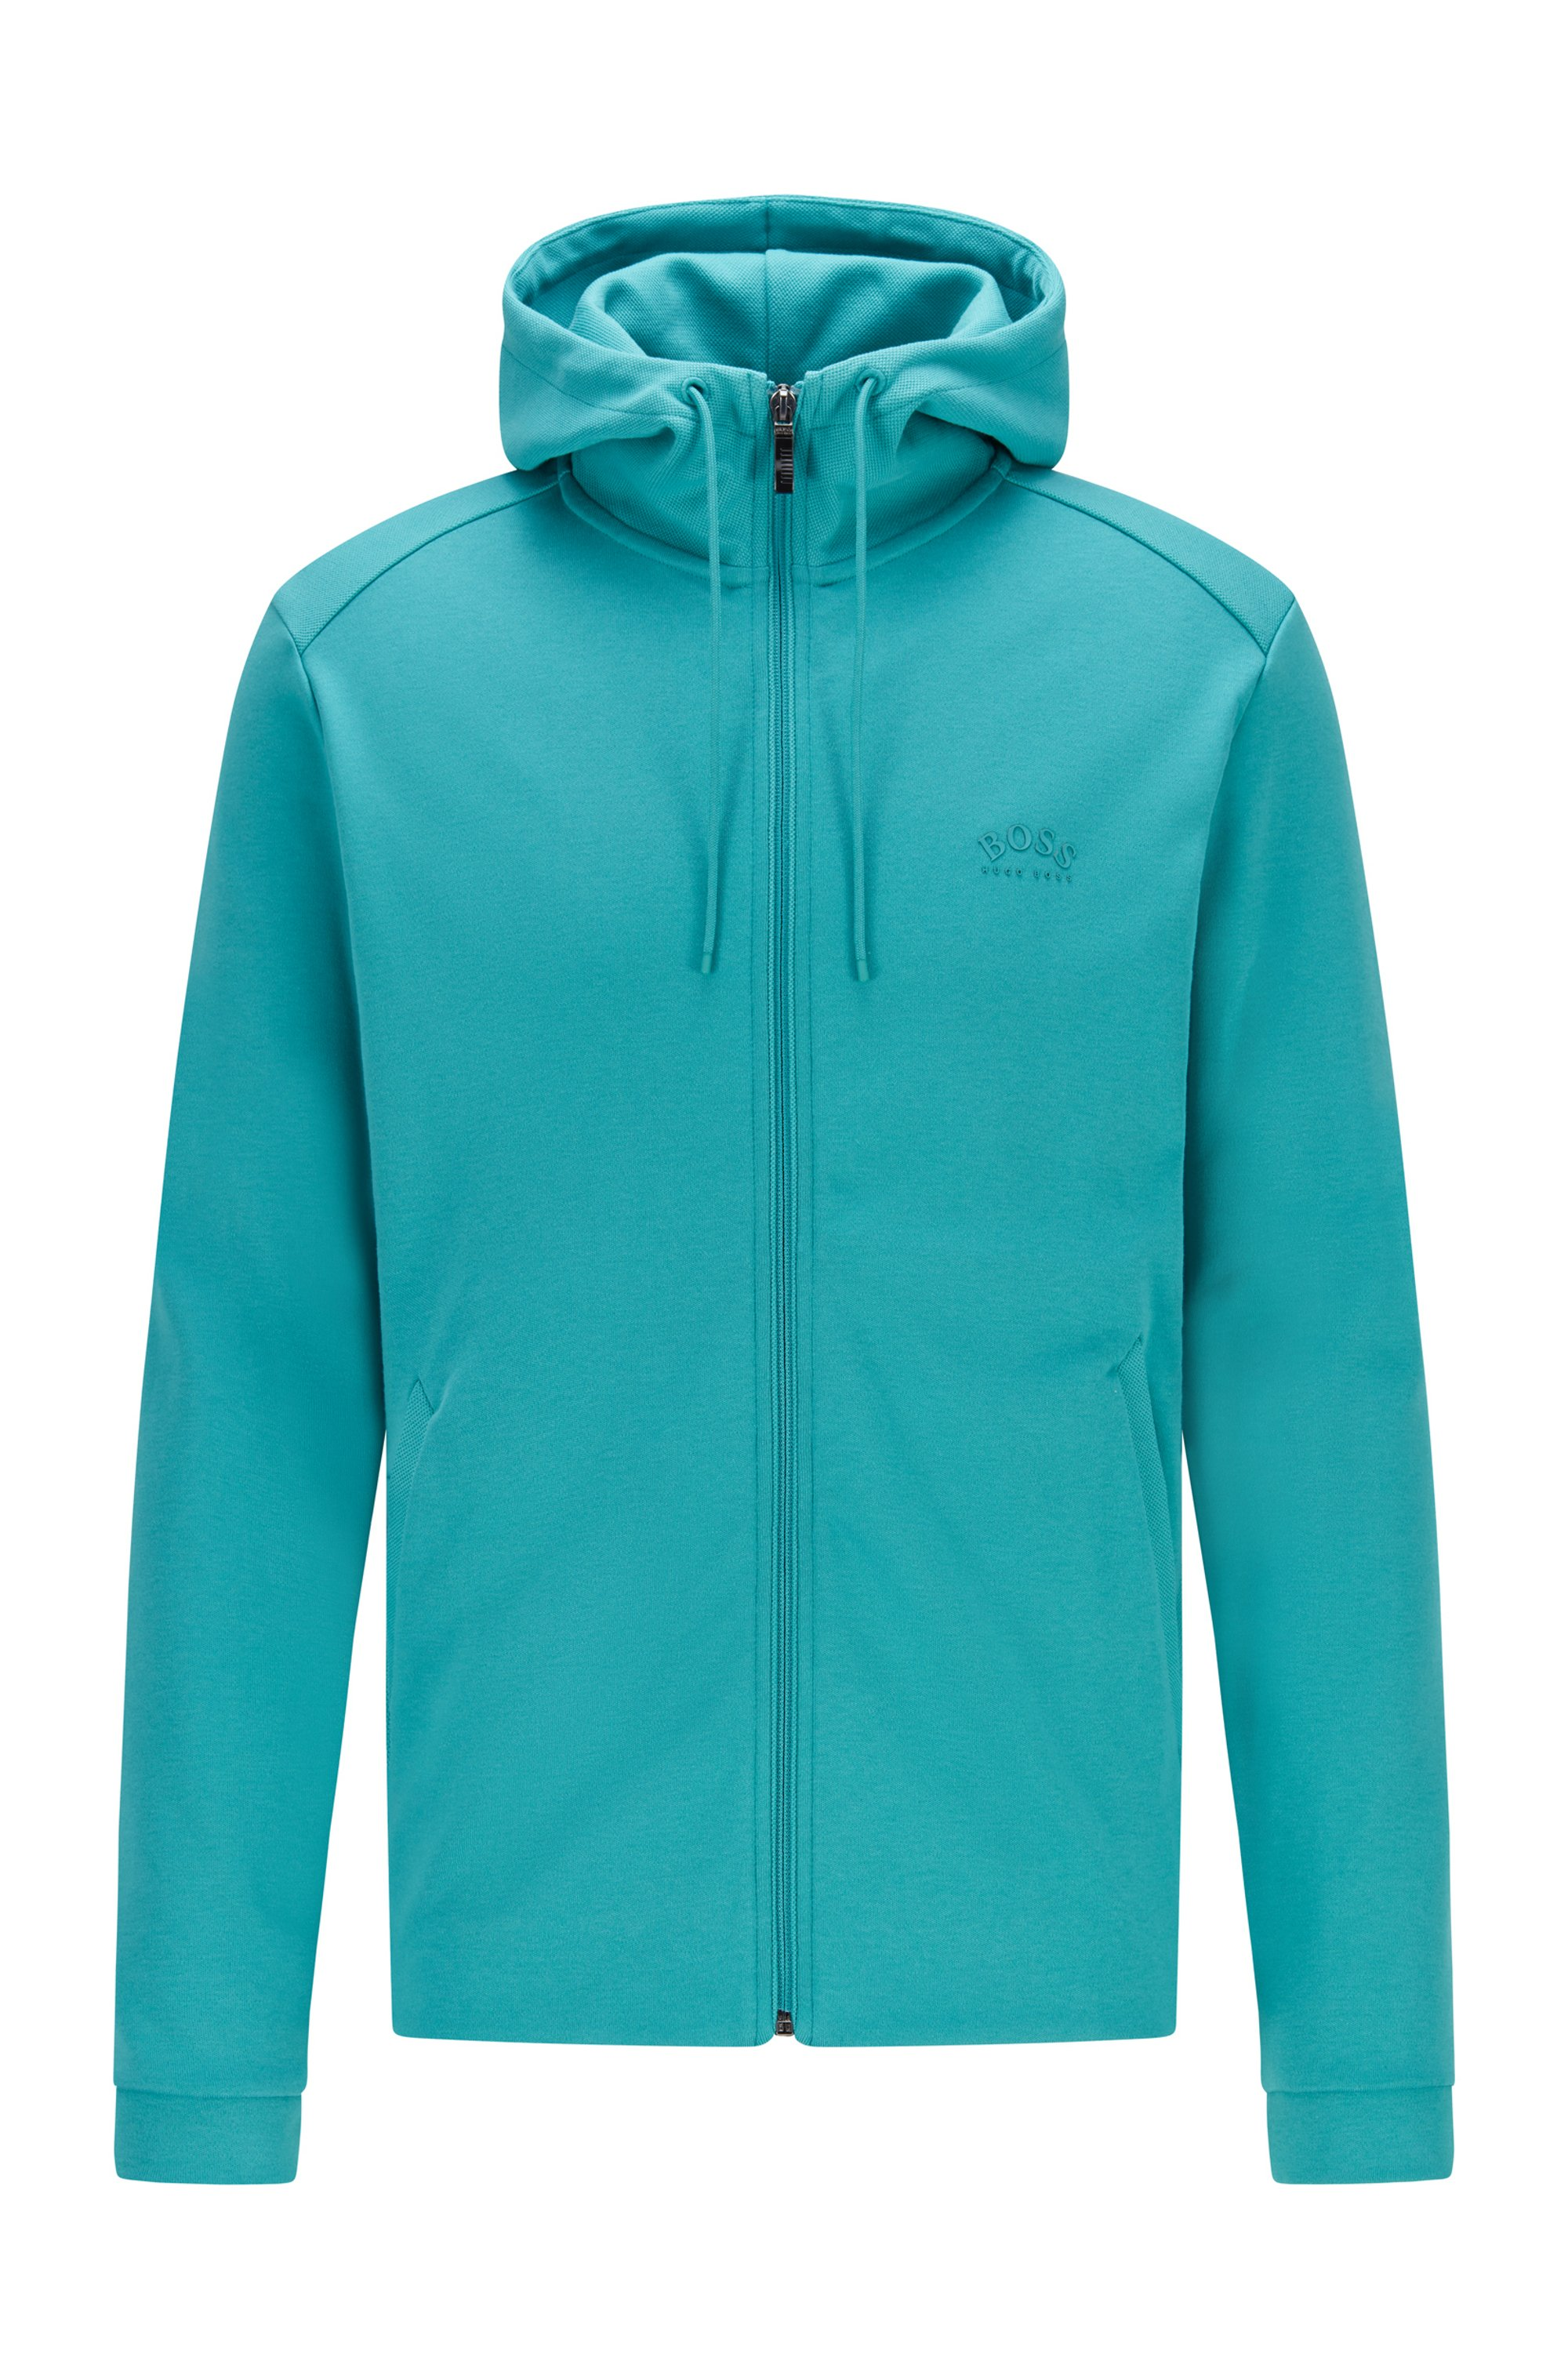 Mixed-structure hooded sweatshirt with zipped phone pocket, Turquoise